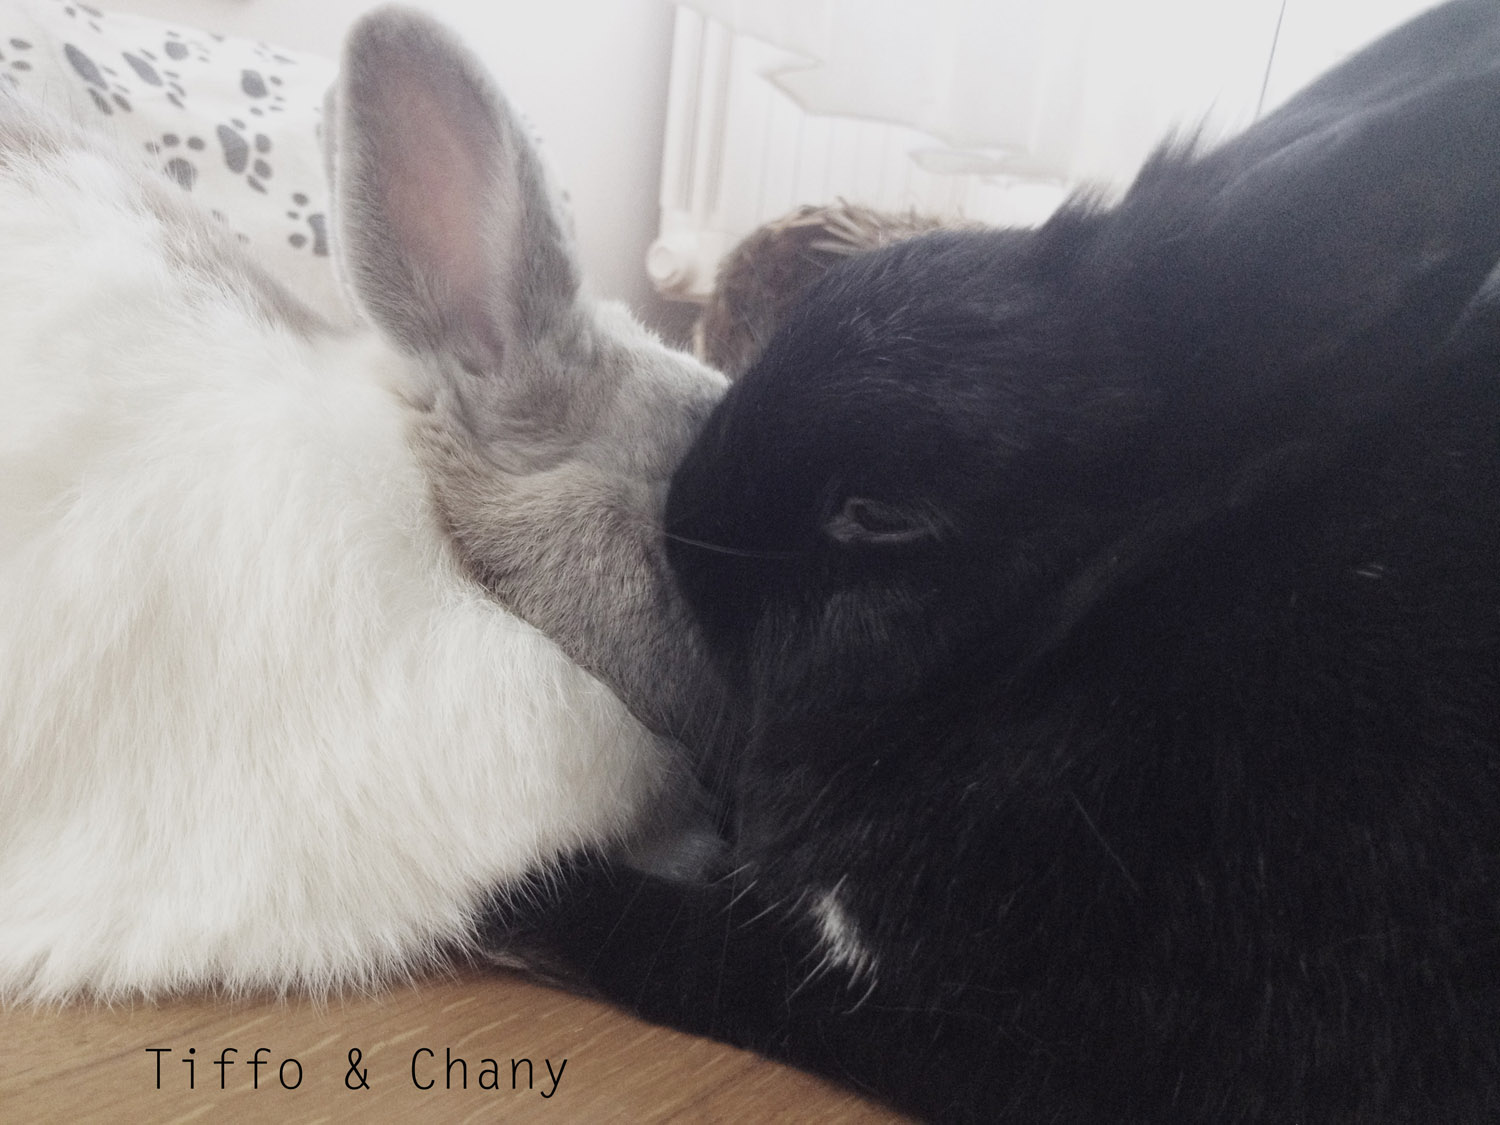 Tiffo e chany